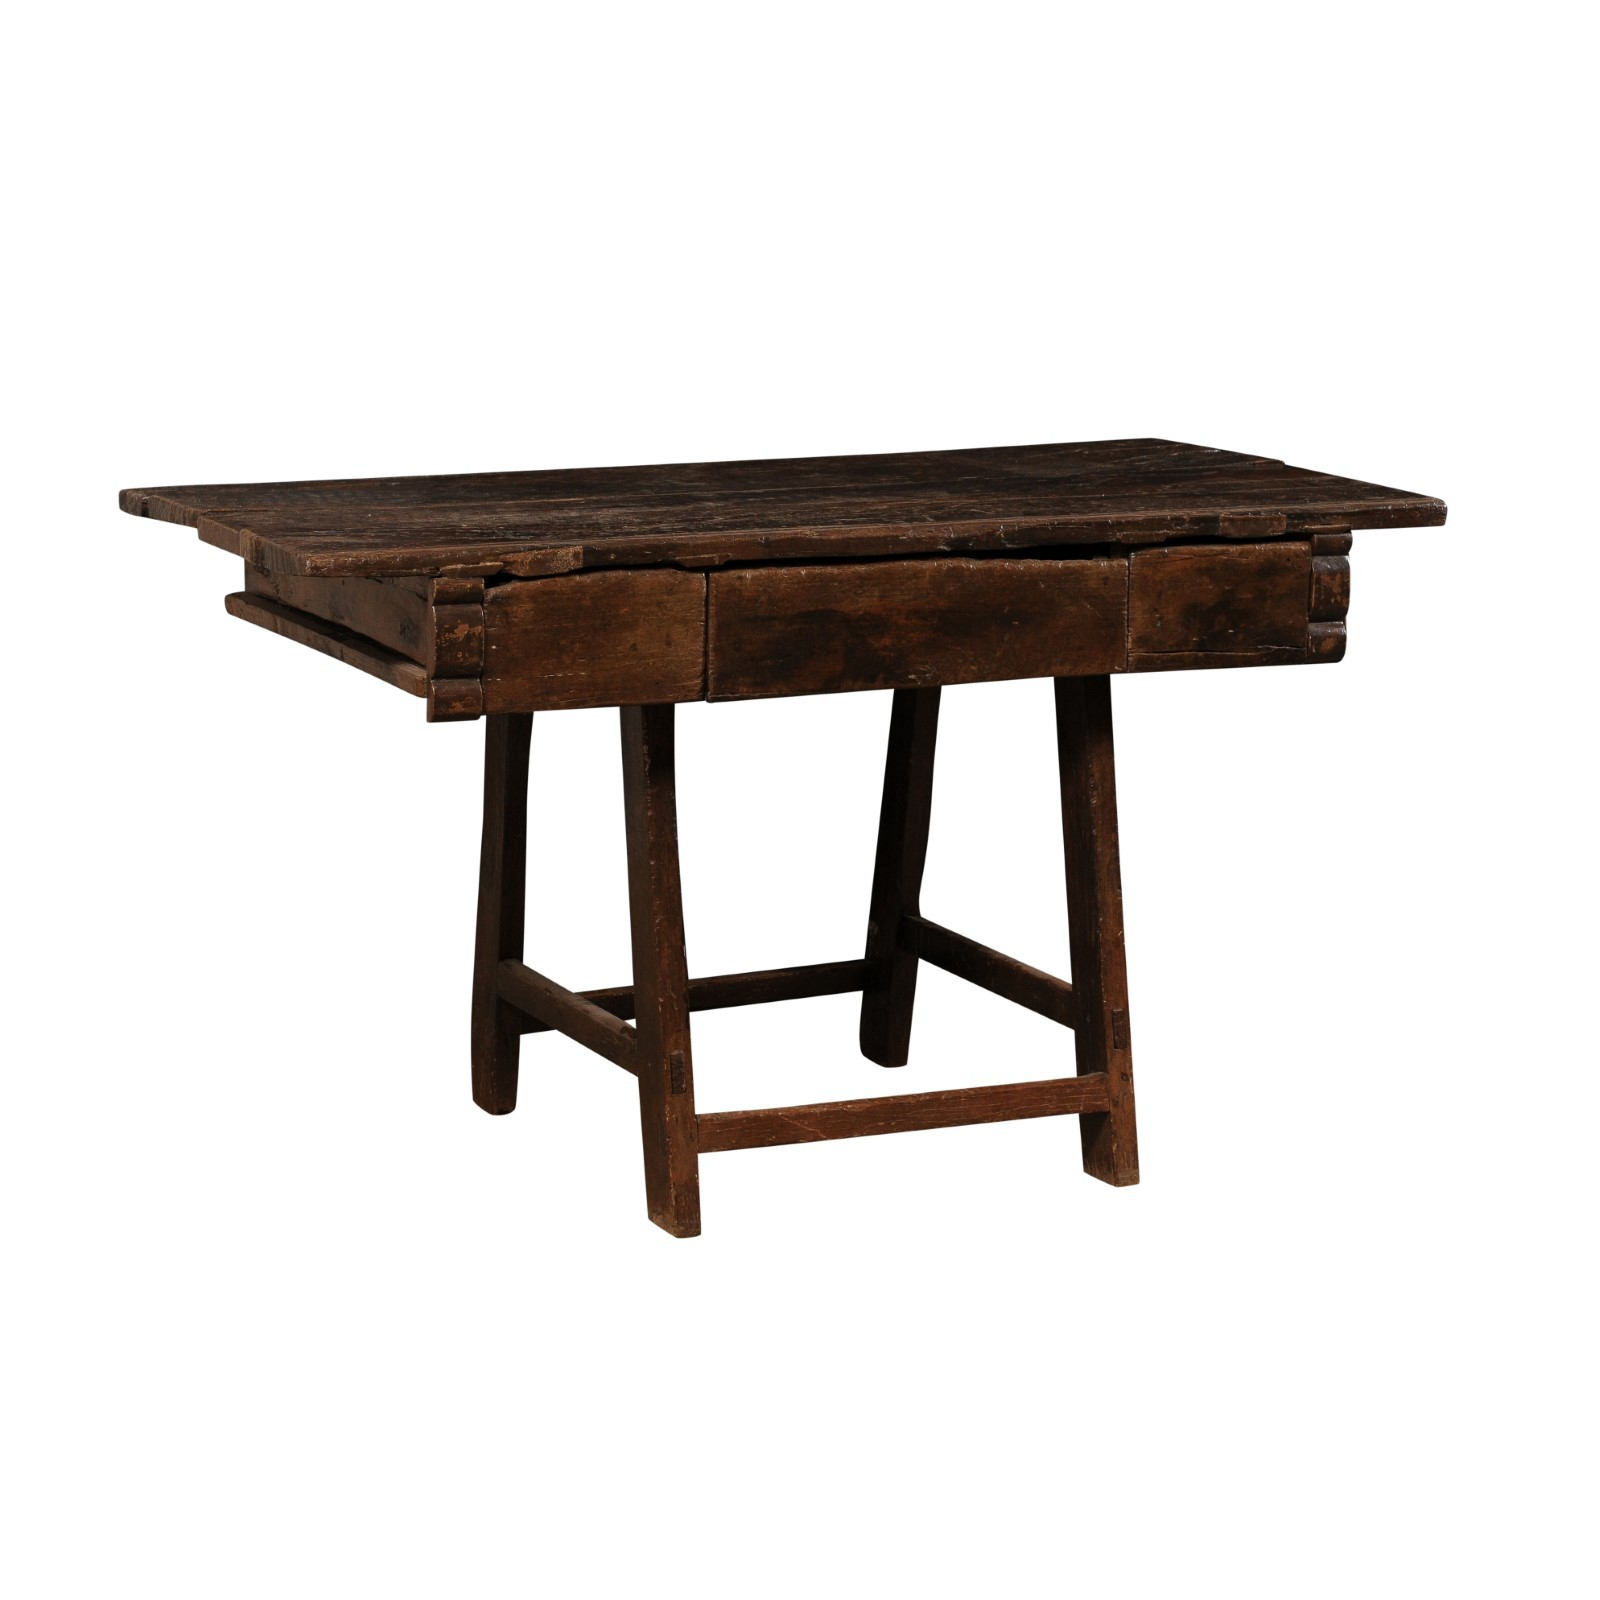 18th C. Brazilian Peroba Wood Table